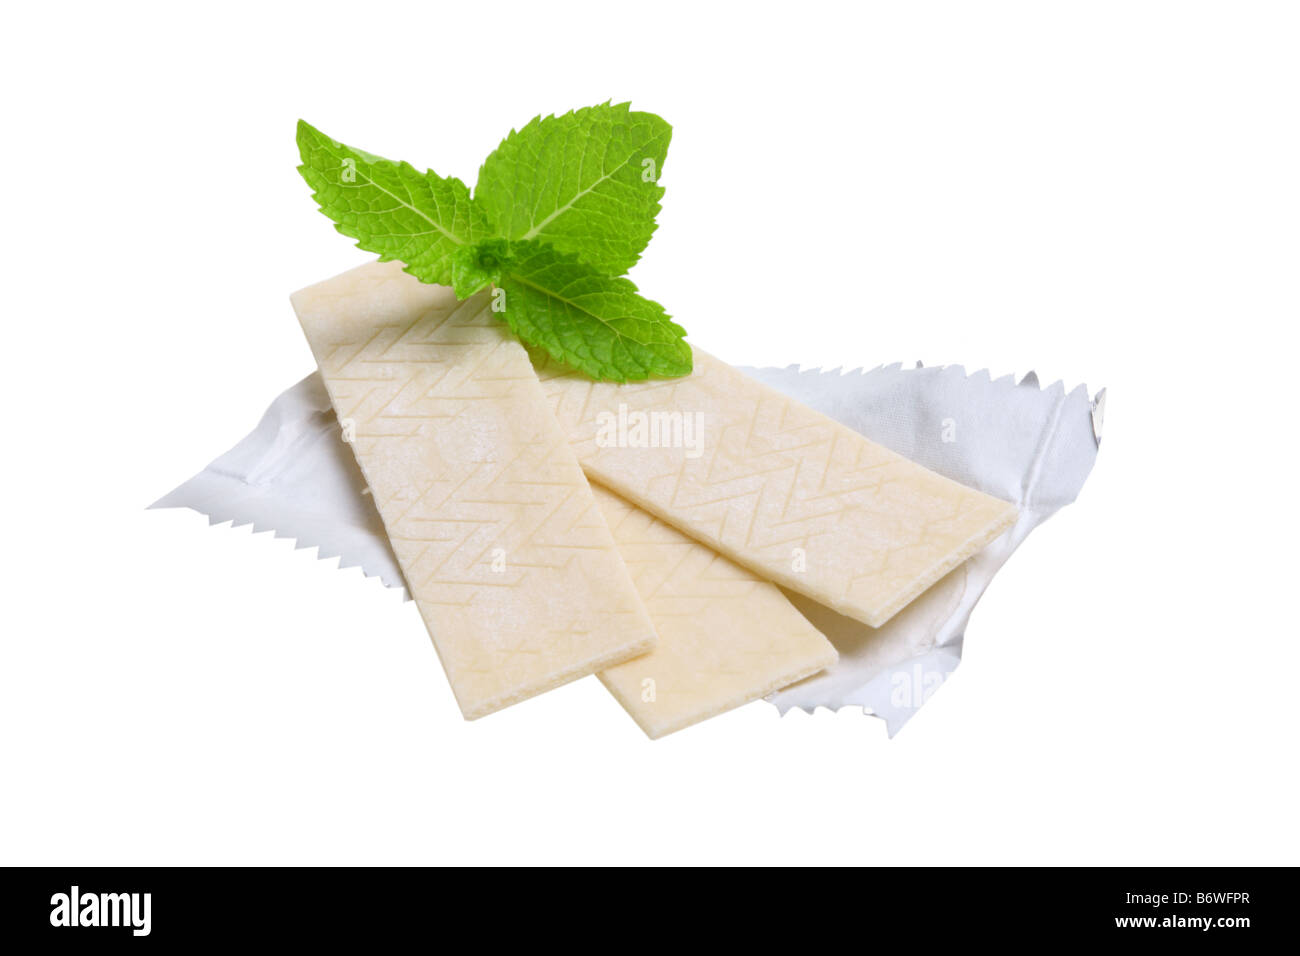 Chewing gum and mint leaves cut out isolated on white background - Stock Image